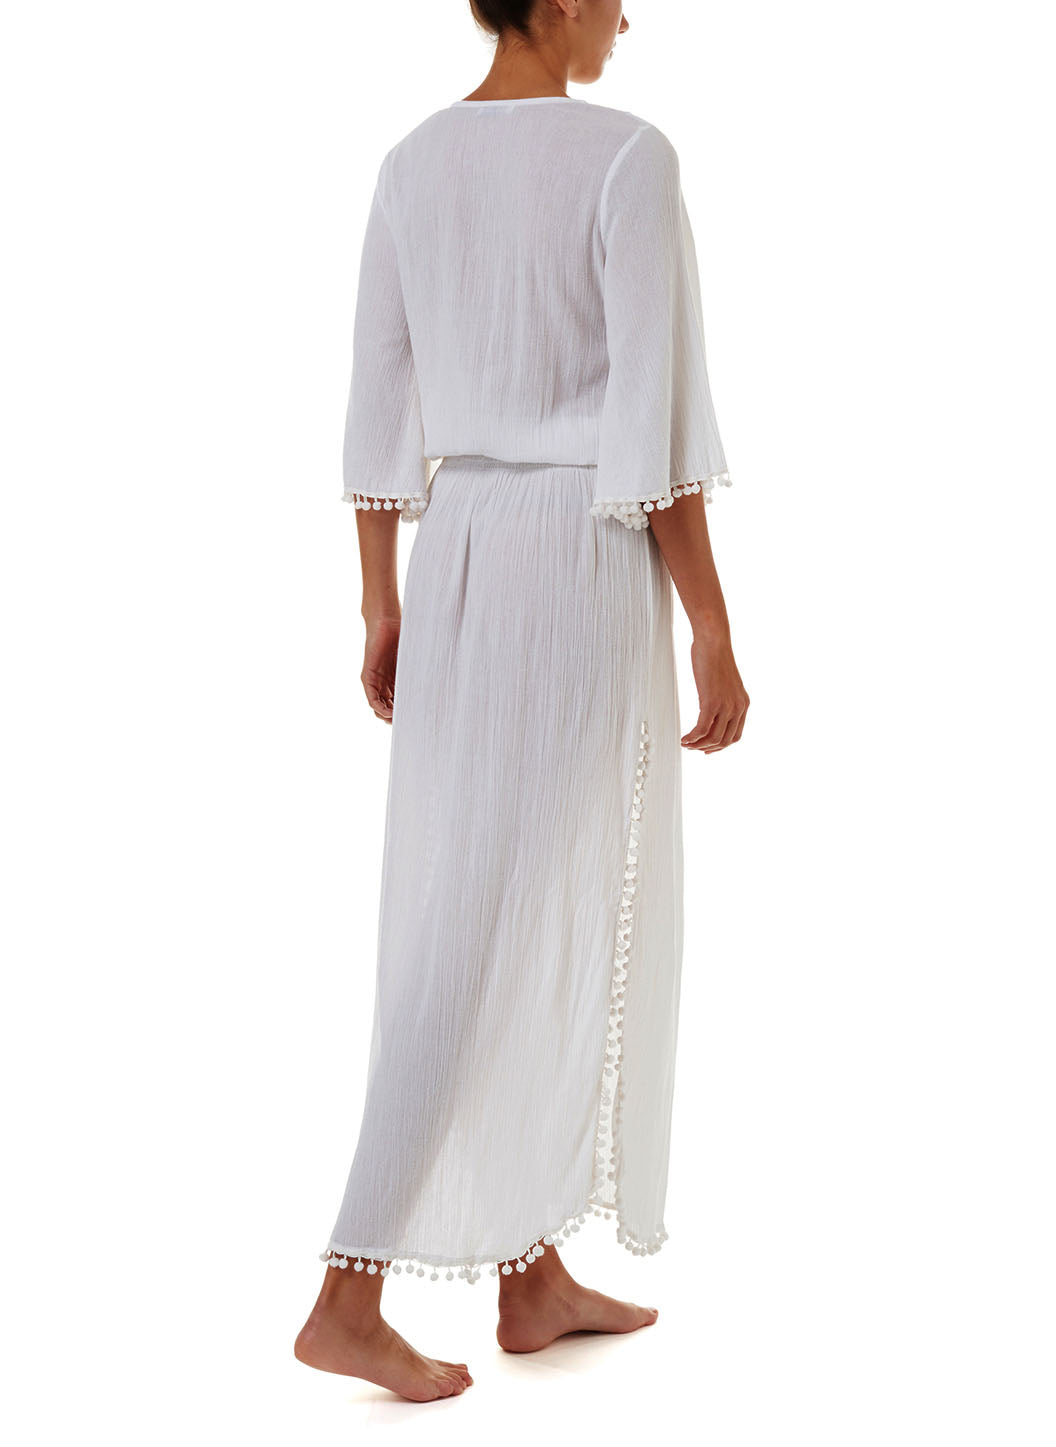 Kari White Lace-Up Embroidered Long Dress